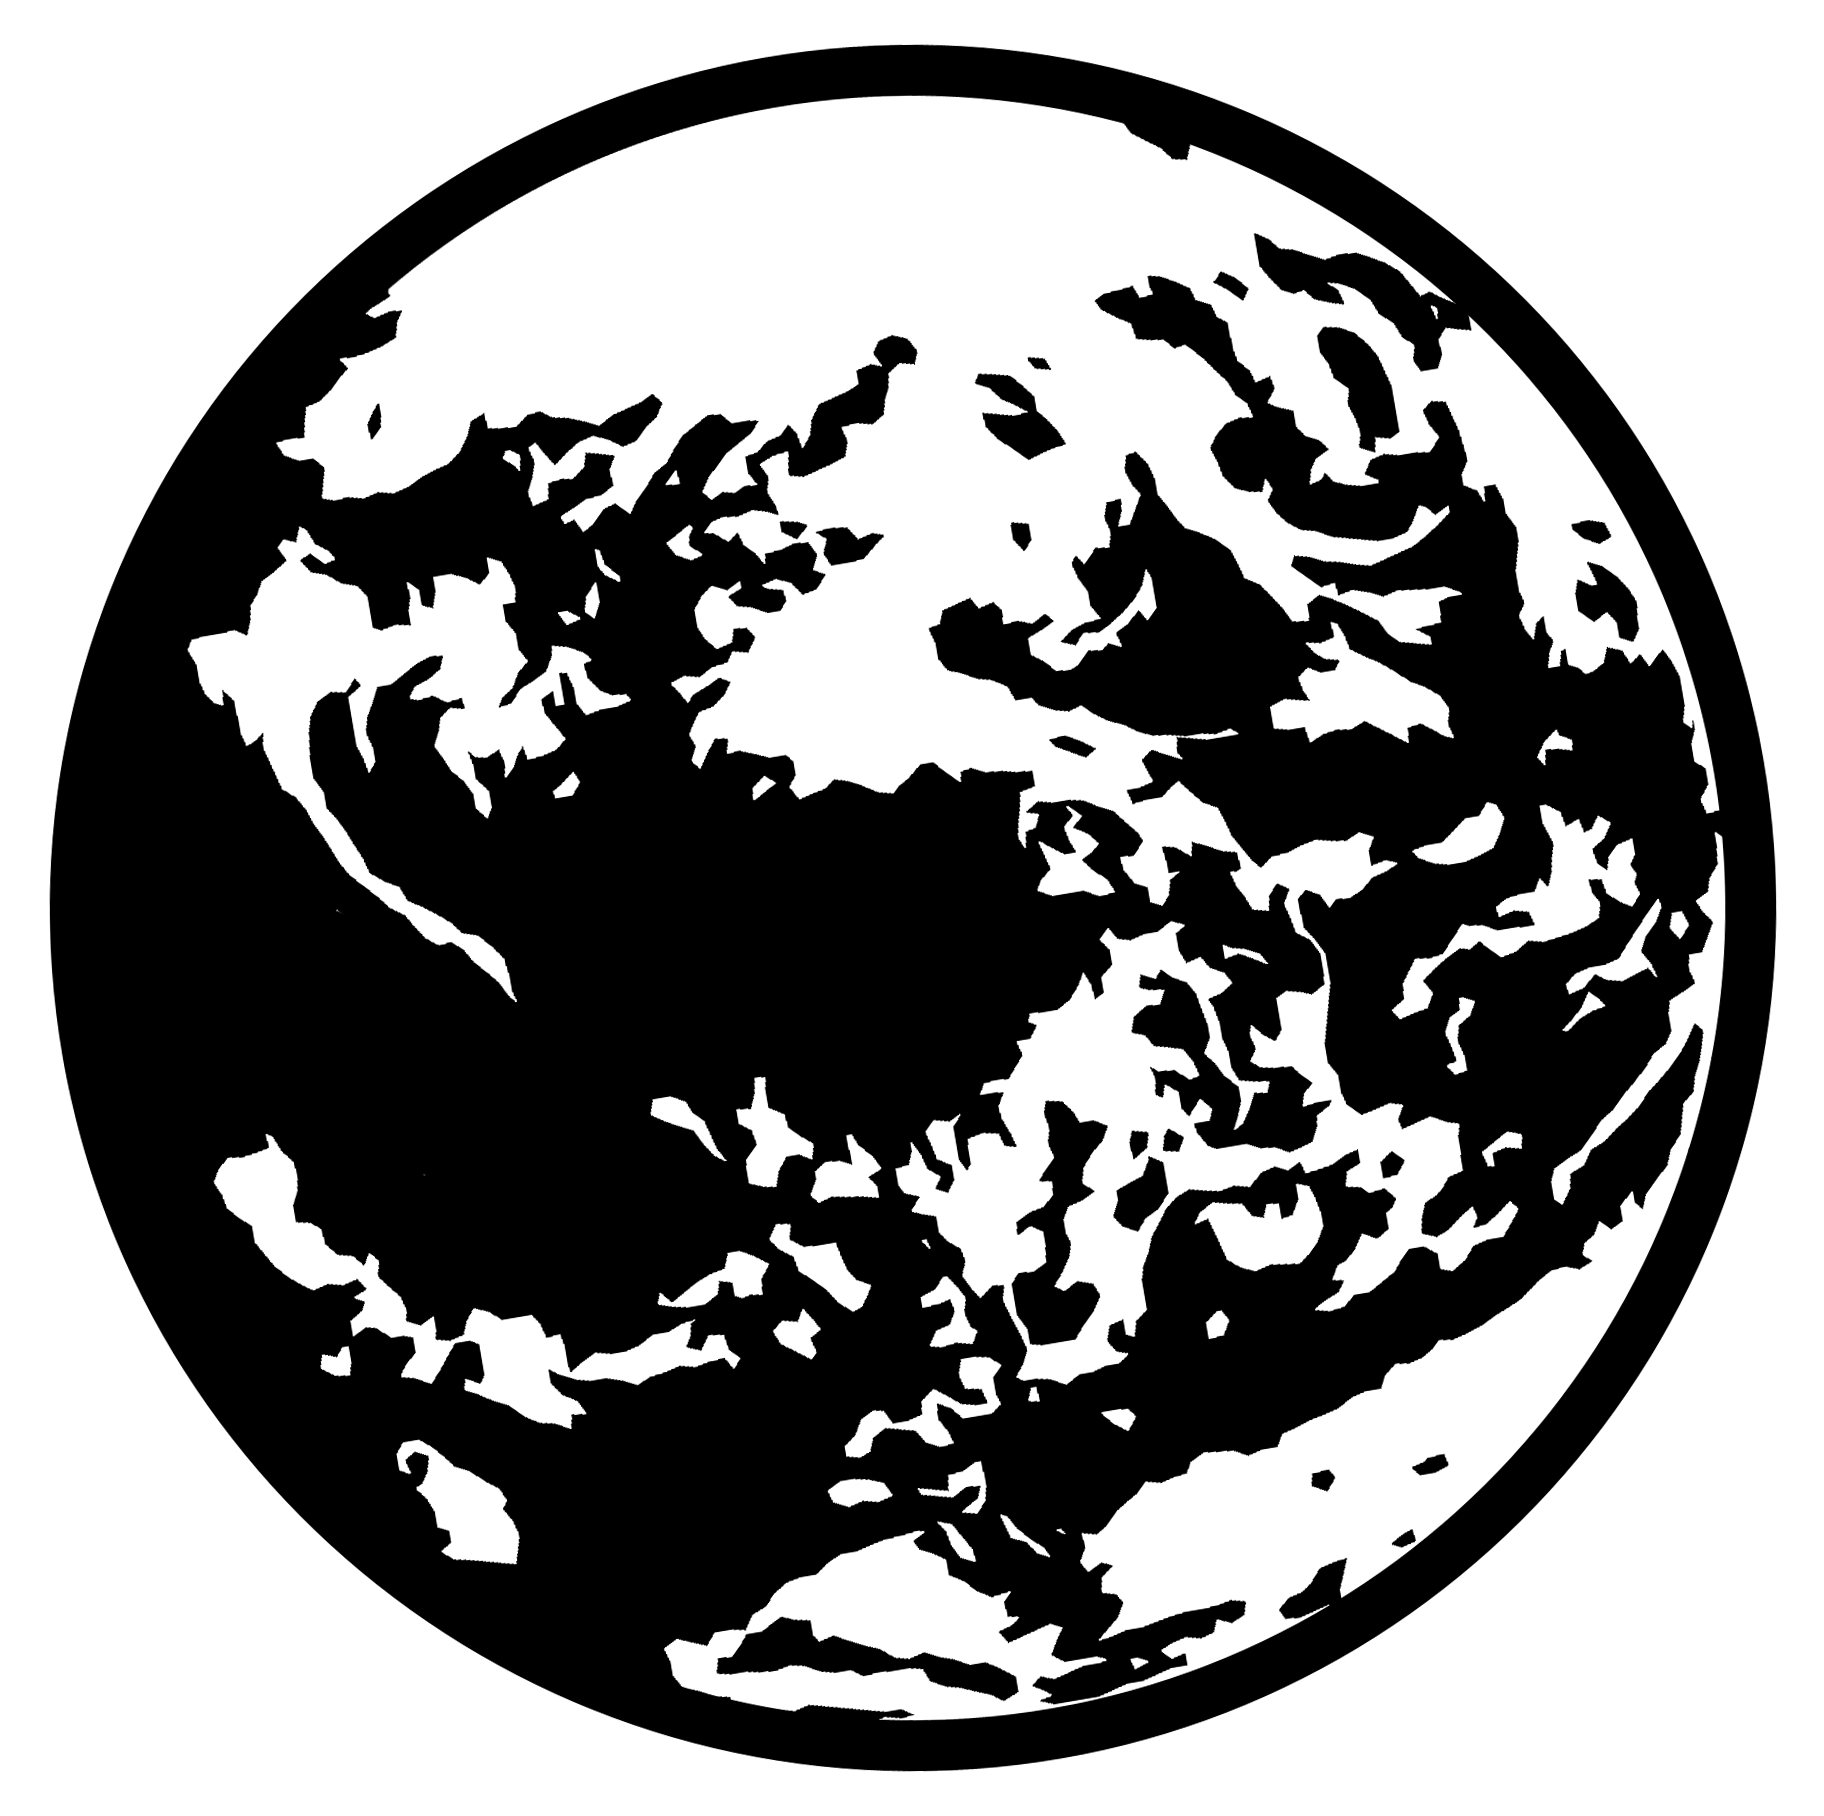 MOTHER-EarthBound-logo